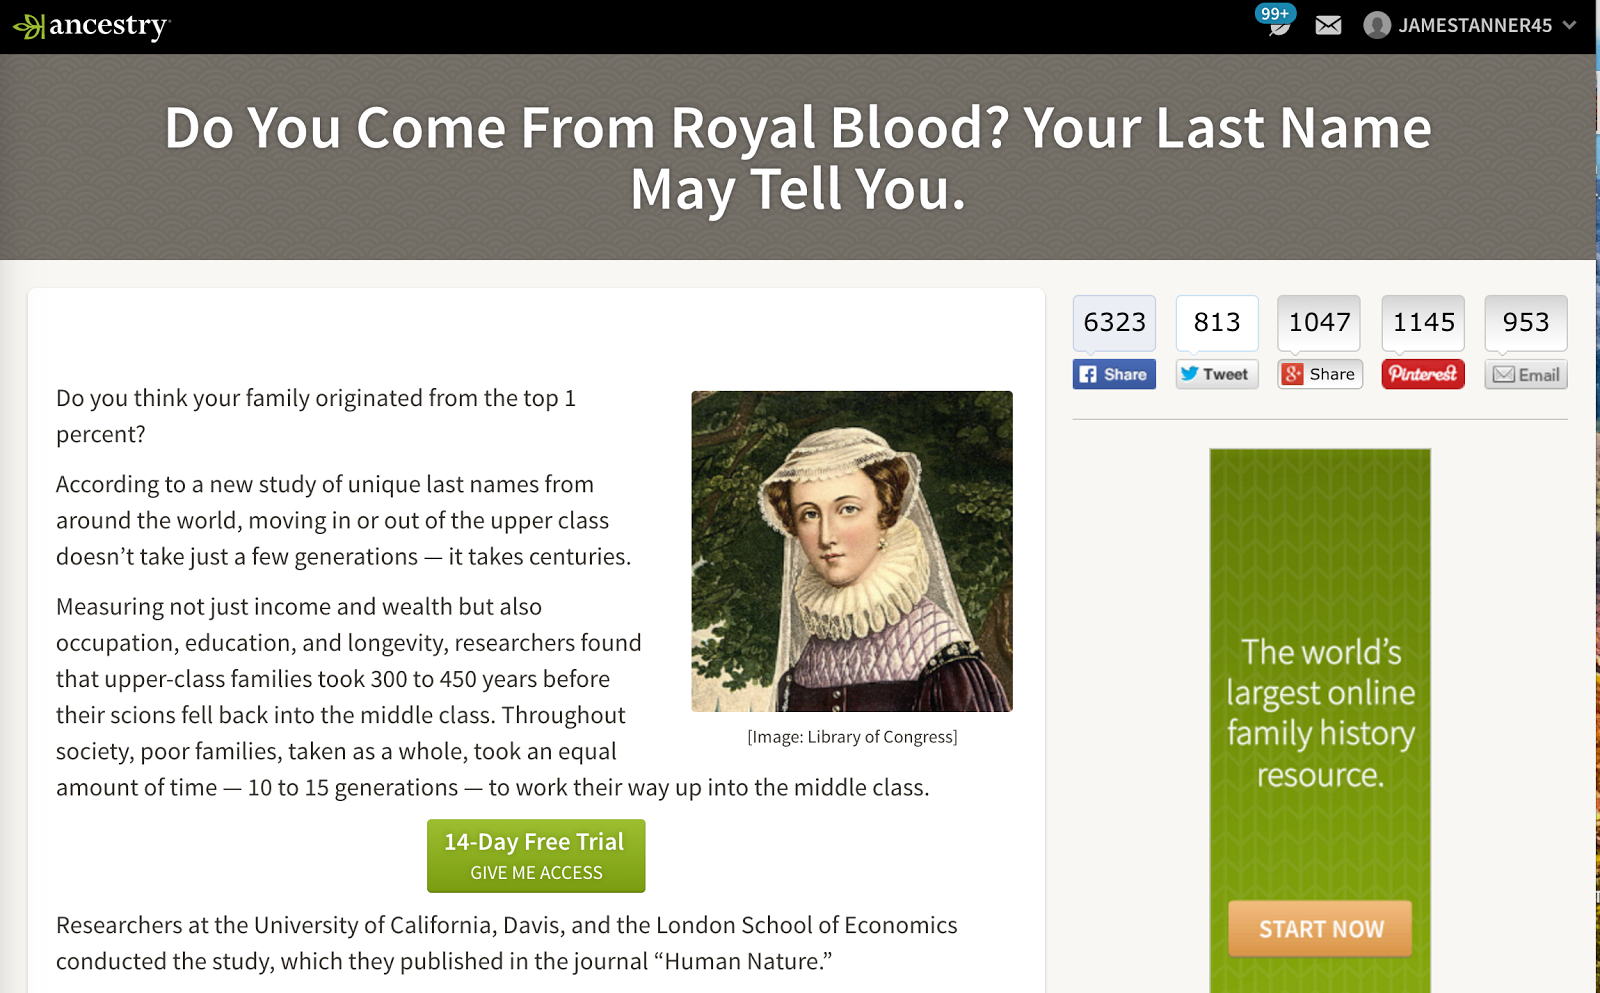 Does Your Last Name Indicate Royal Blood